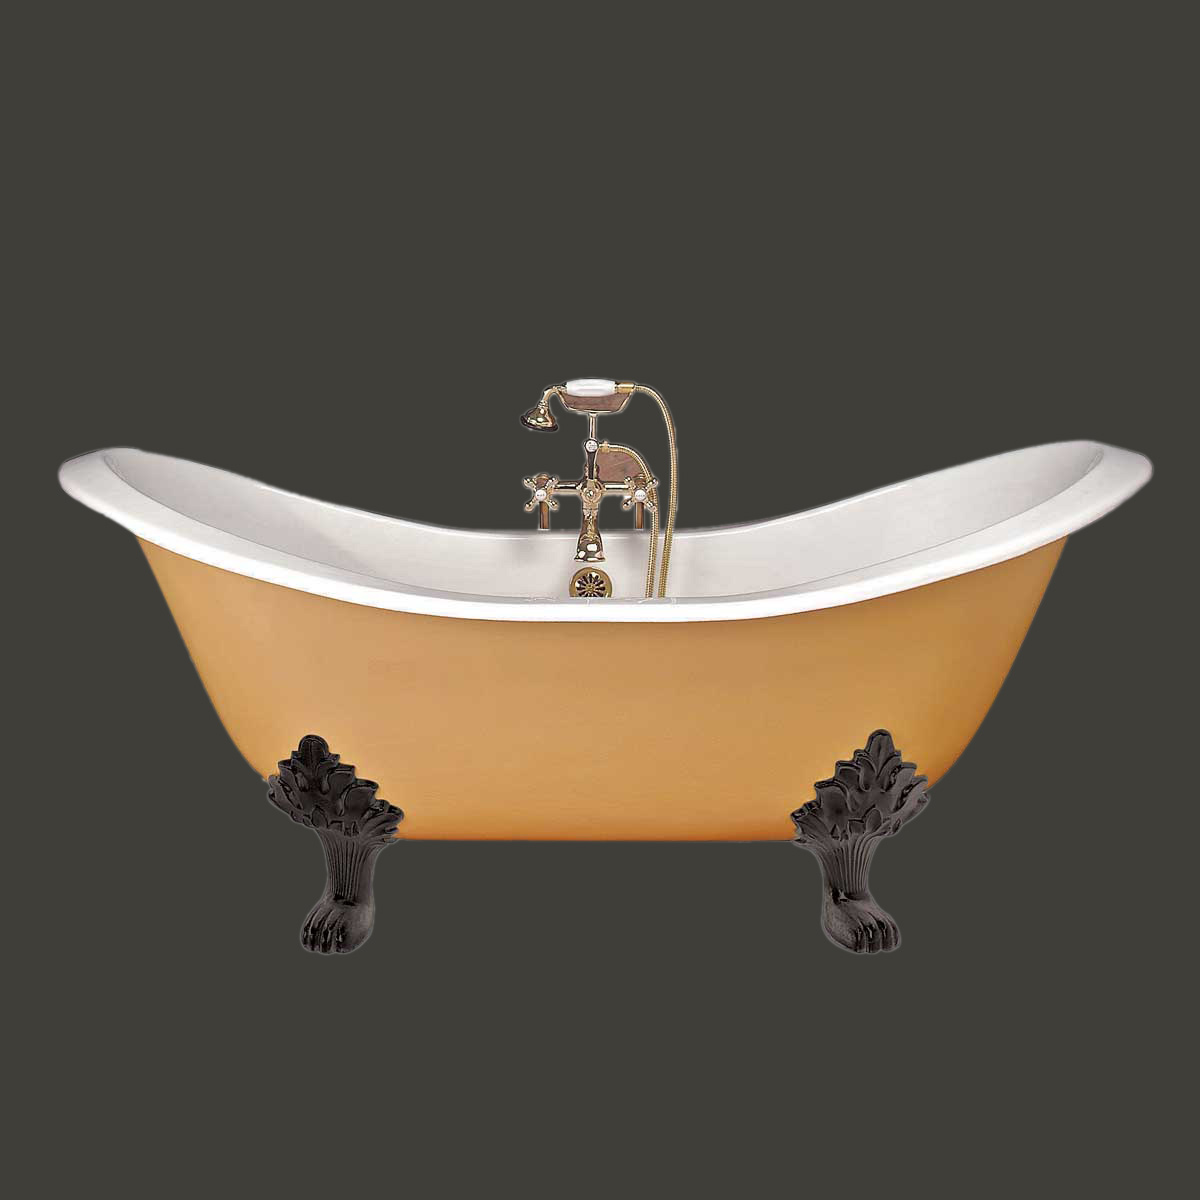 Stunning  name clawfoot tubs white iron clawfoot tub double slipper black feet 1200 x 1200 · 80 kB · jpeg